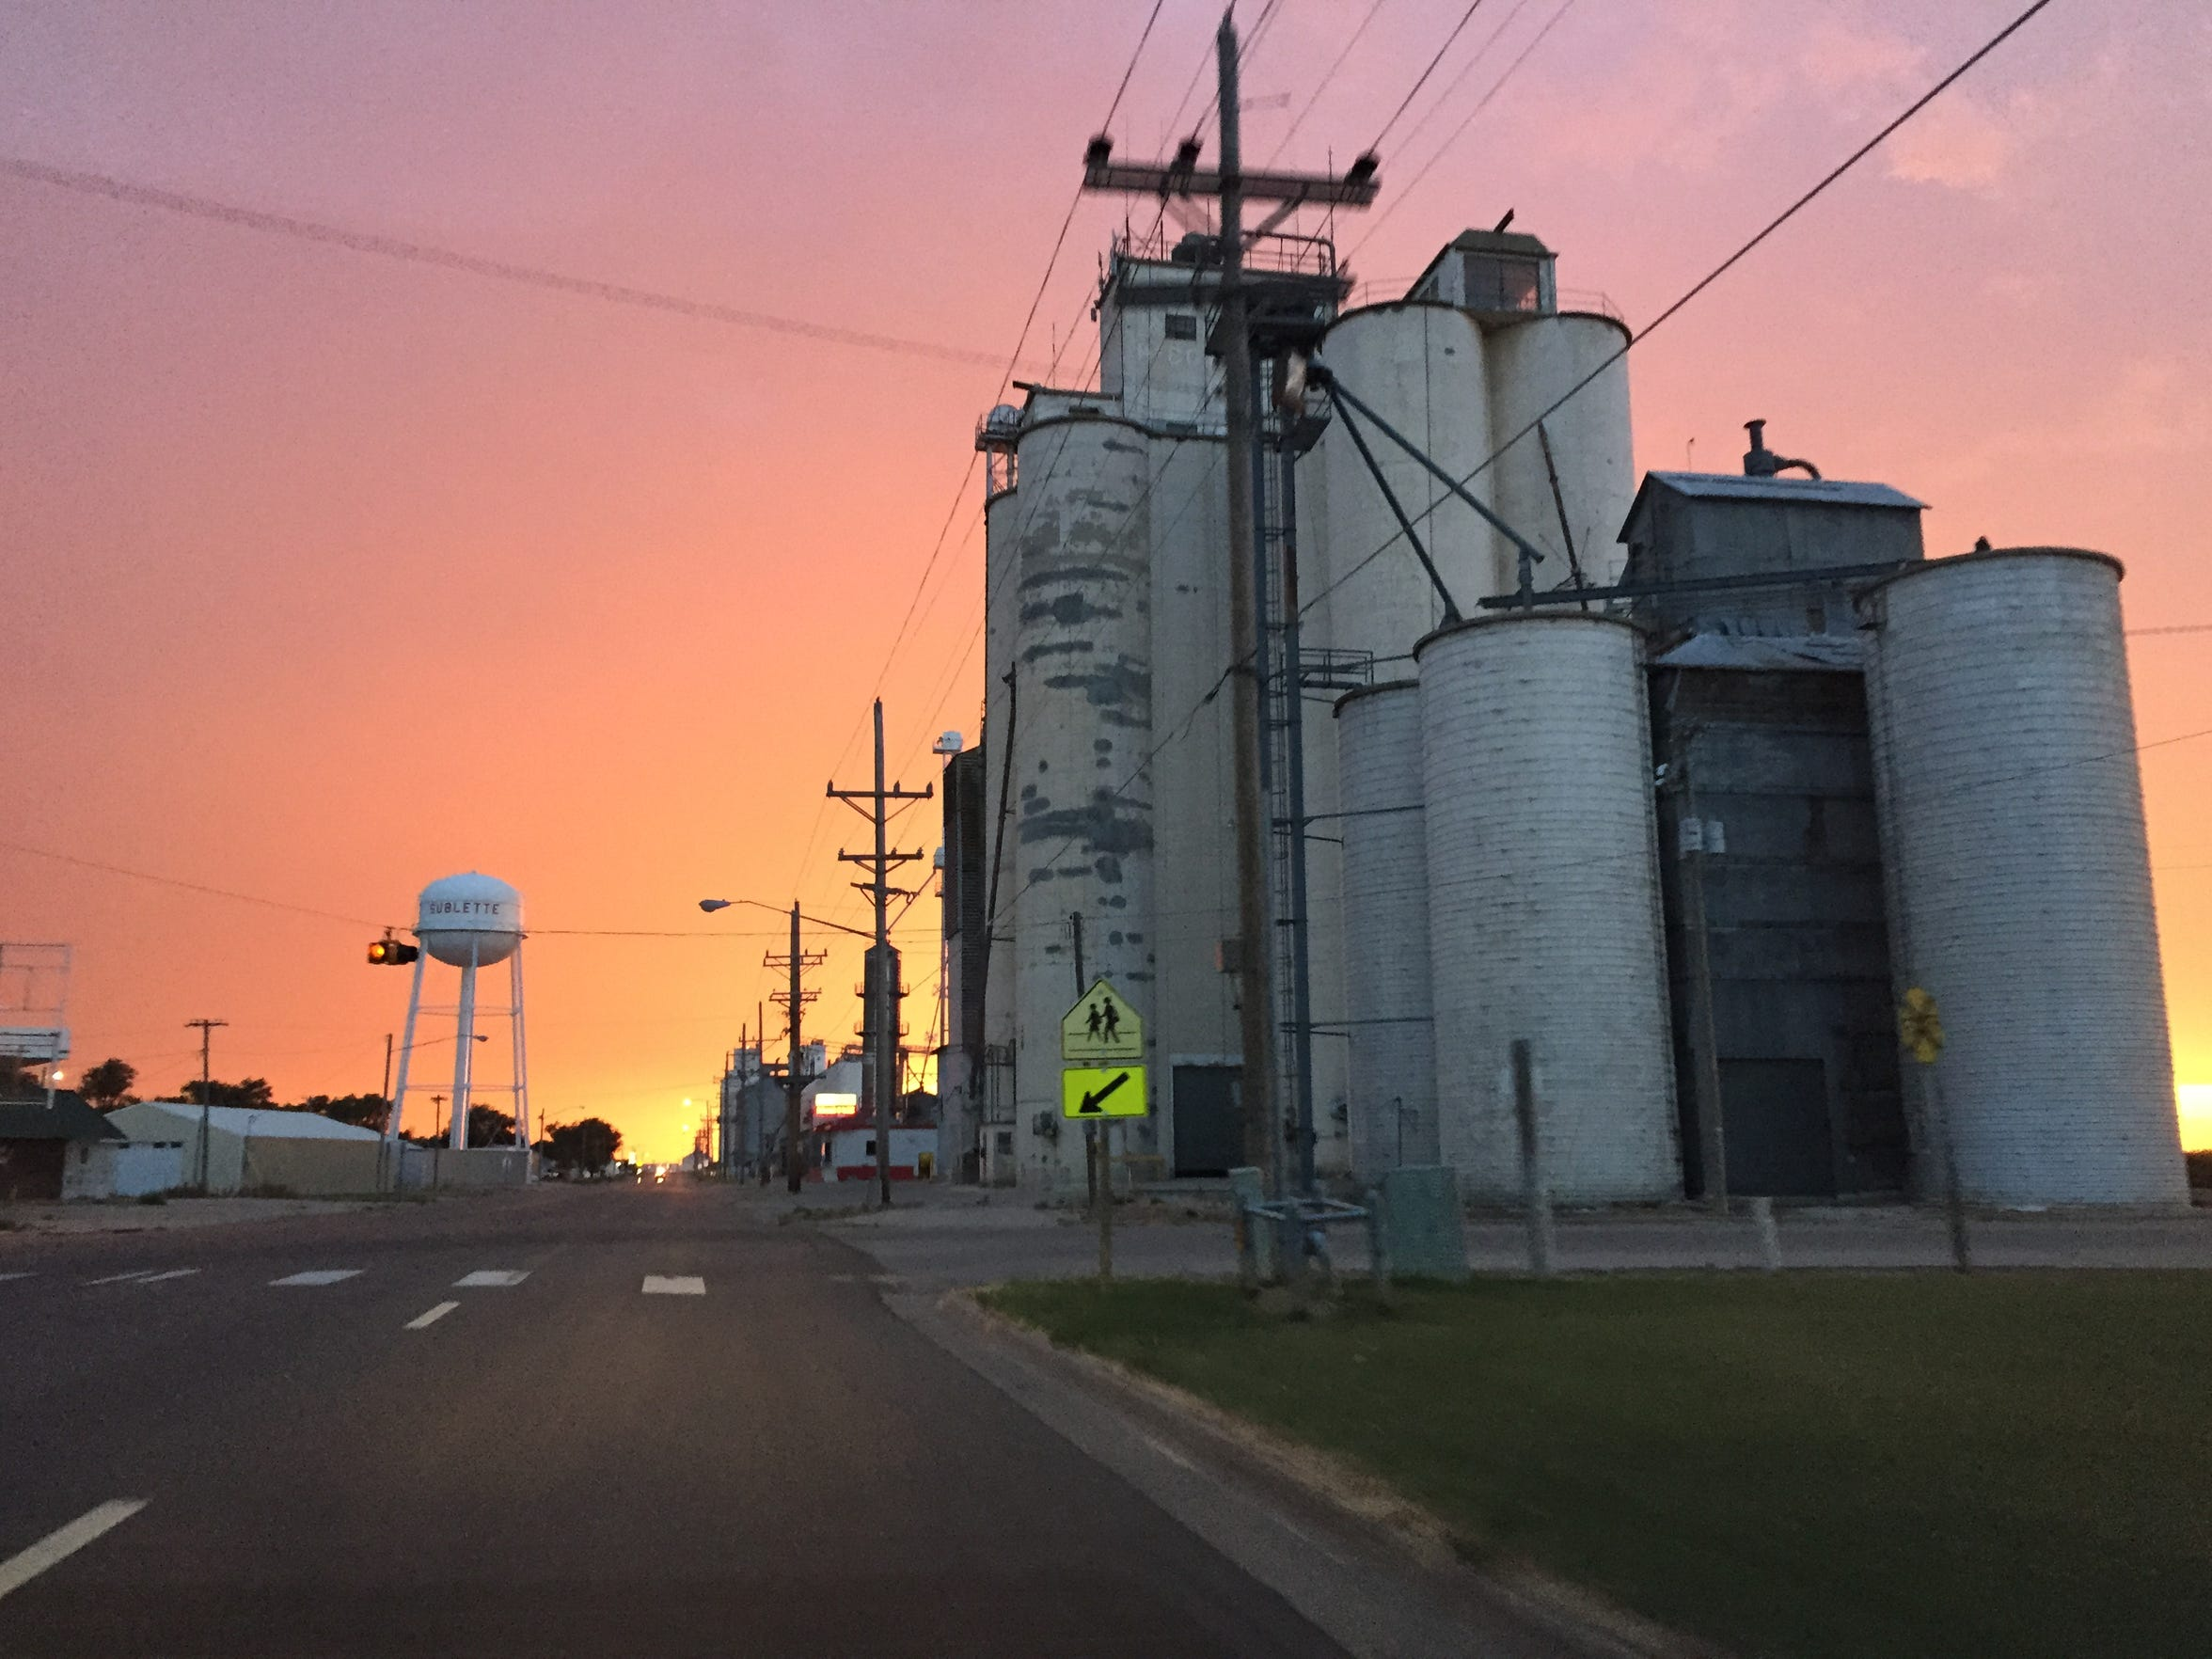 Grain elevators tower over the street in Sublette, Kansas, where the farming economy depends on water pumped from the Ogallala Aquifer.